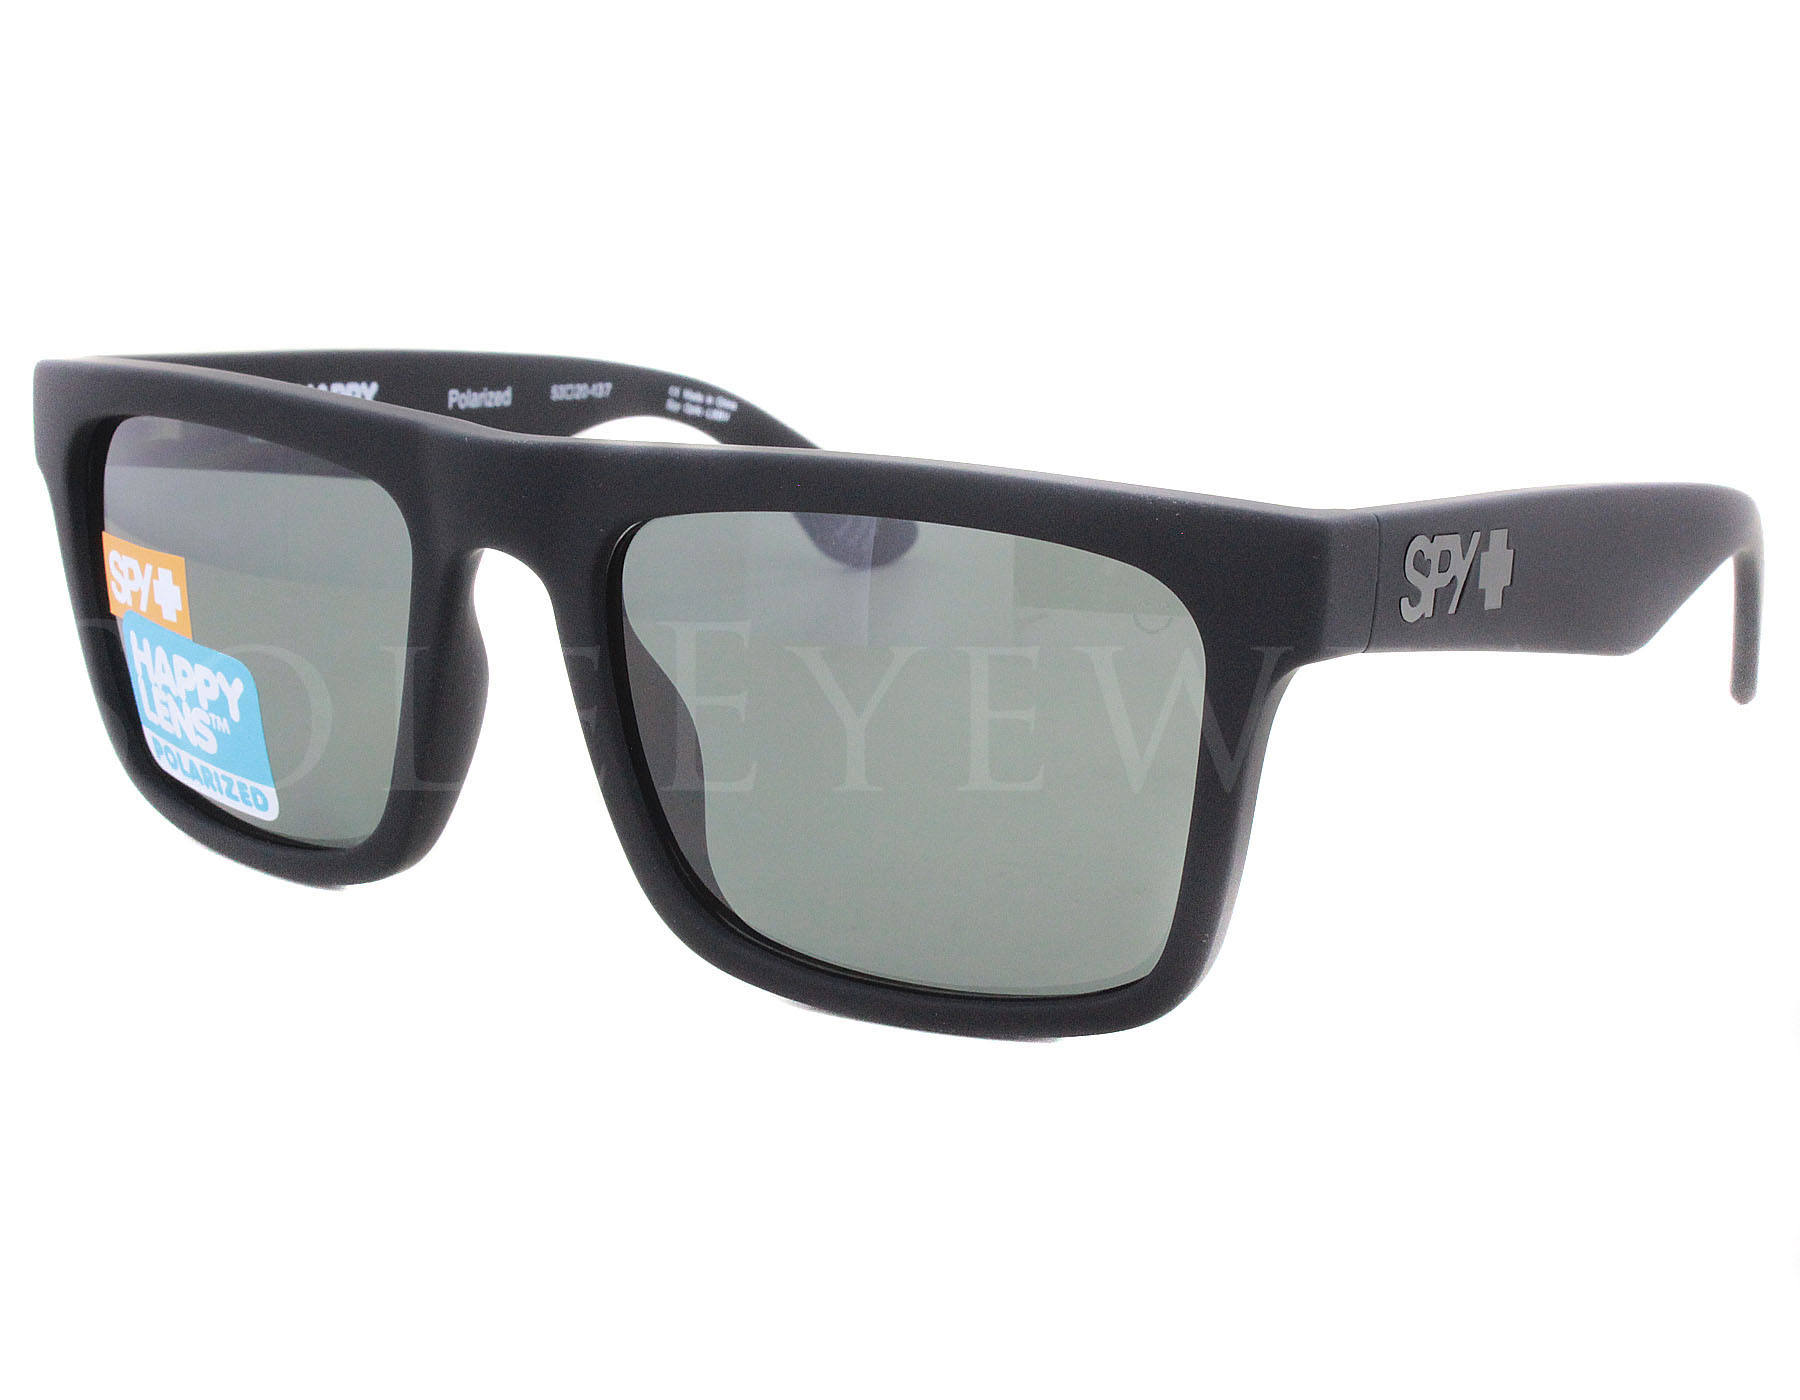 908b760499 Details about NEW Spy Optics Atlas Soft Matte Blk   Hap Gr Green Polar  673371973864 Sunglasses